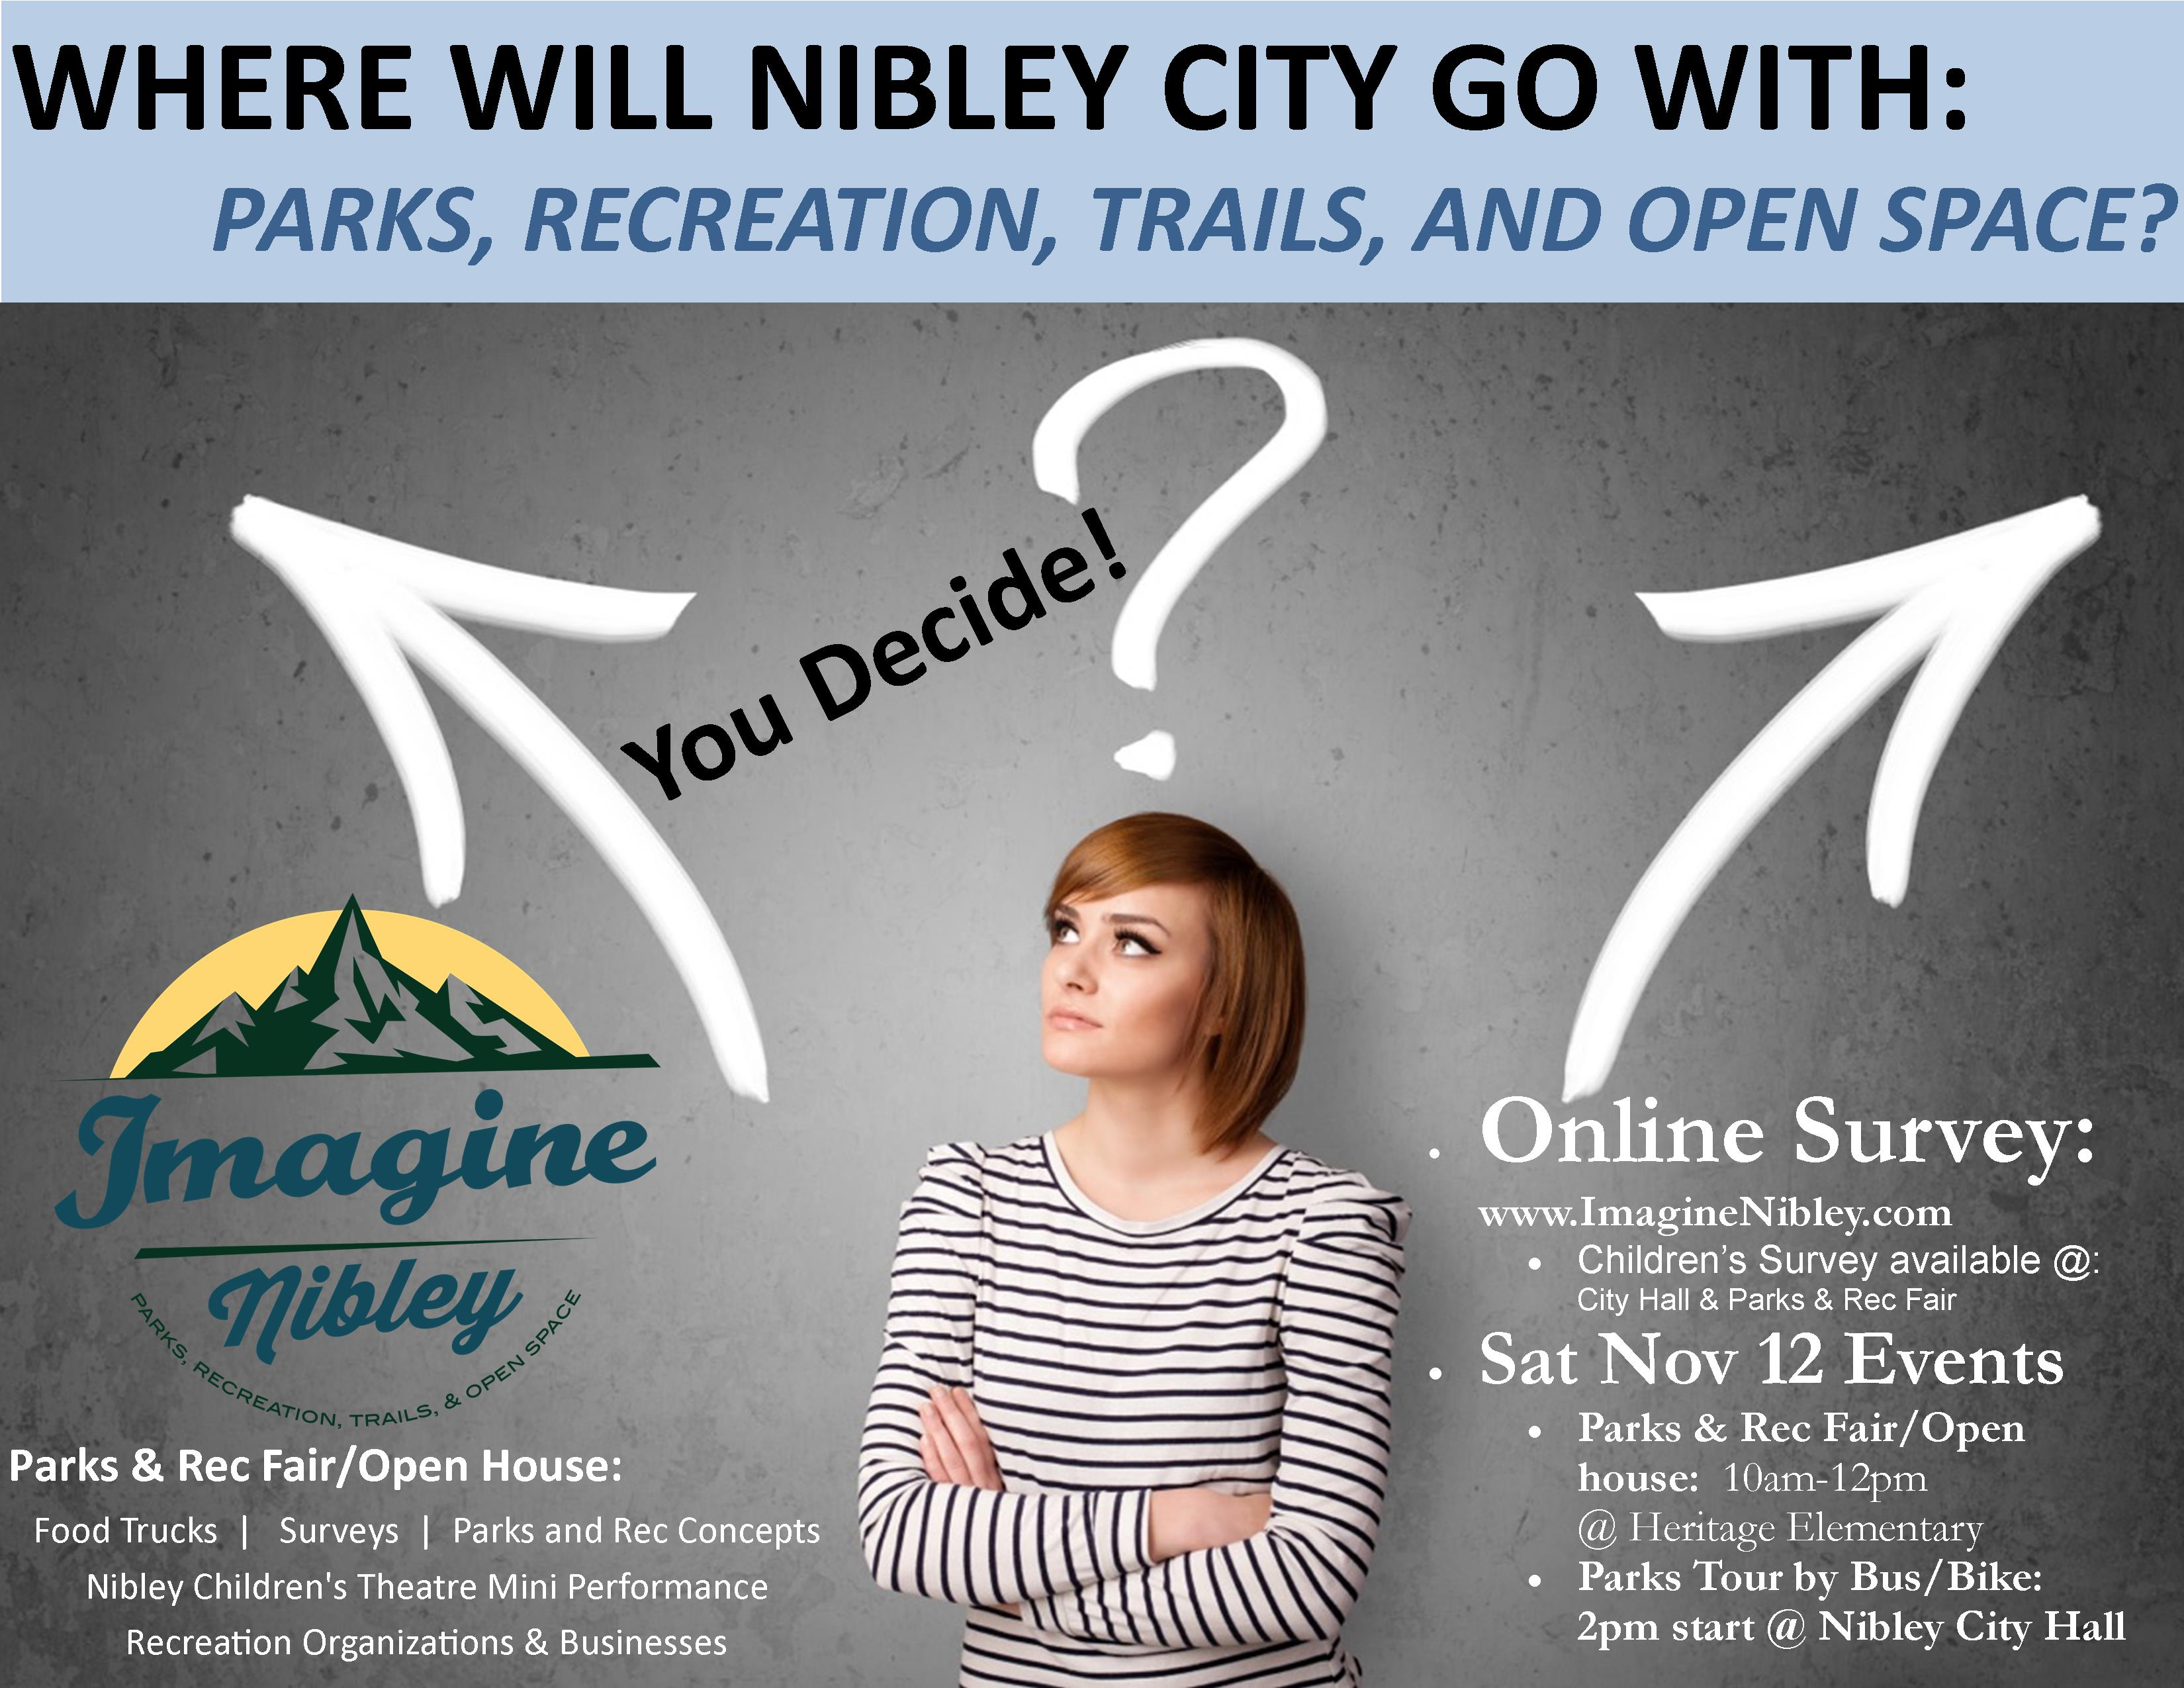 Imagine Nibley Decisions Flyer